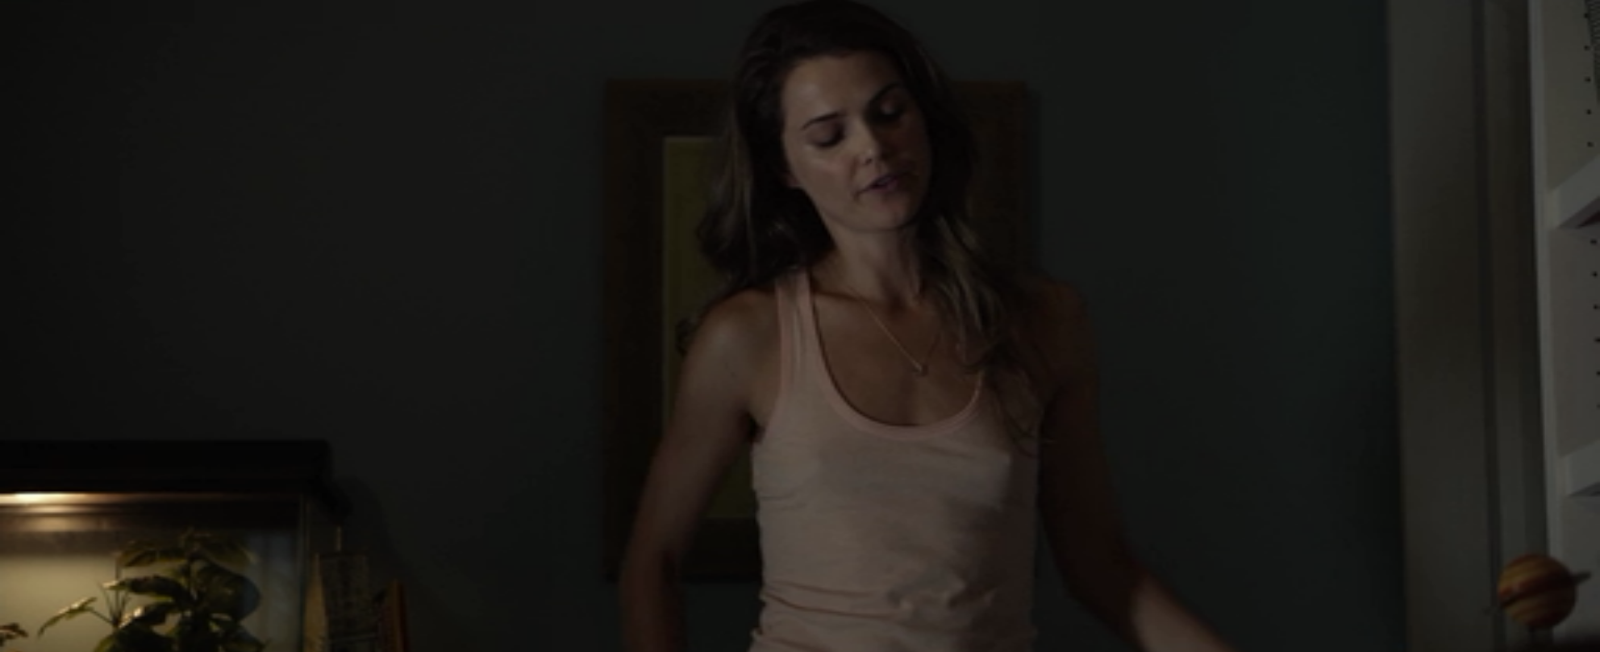 Keri russell sexy pic